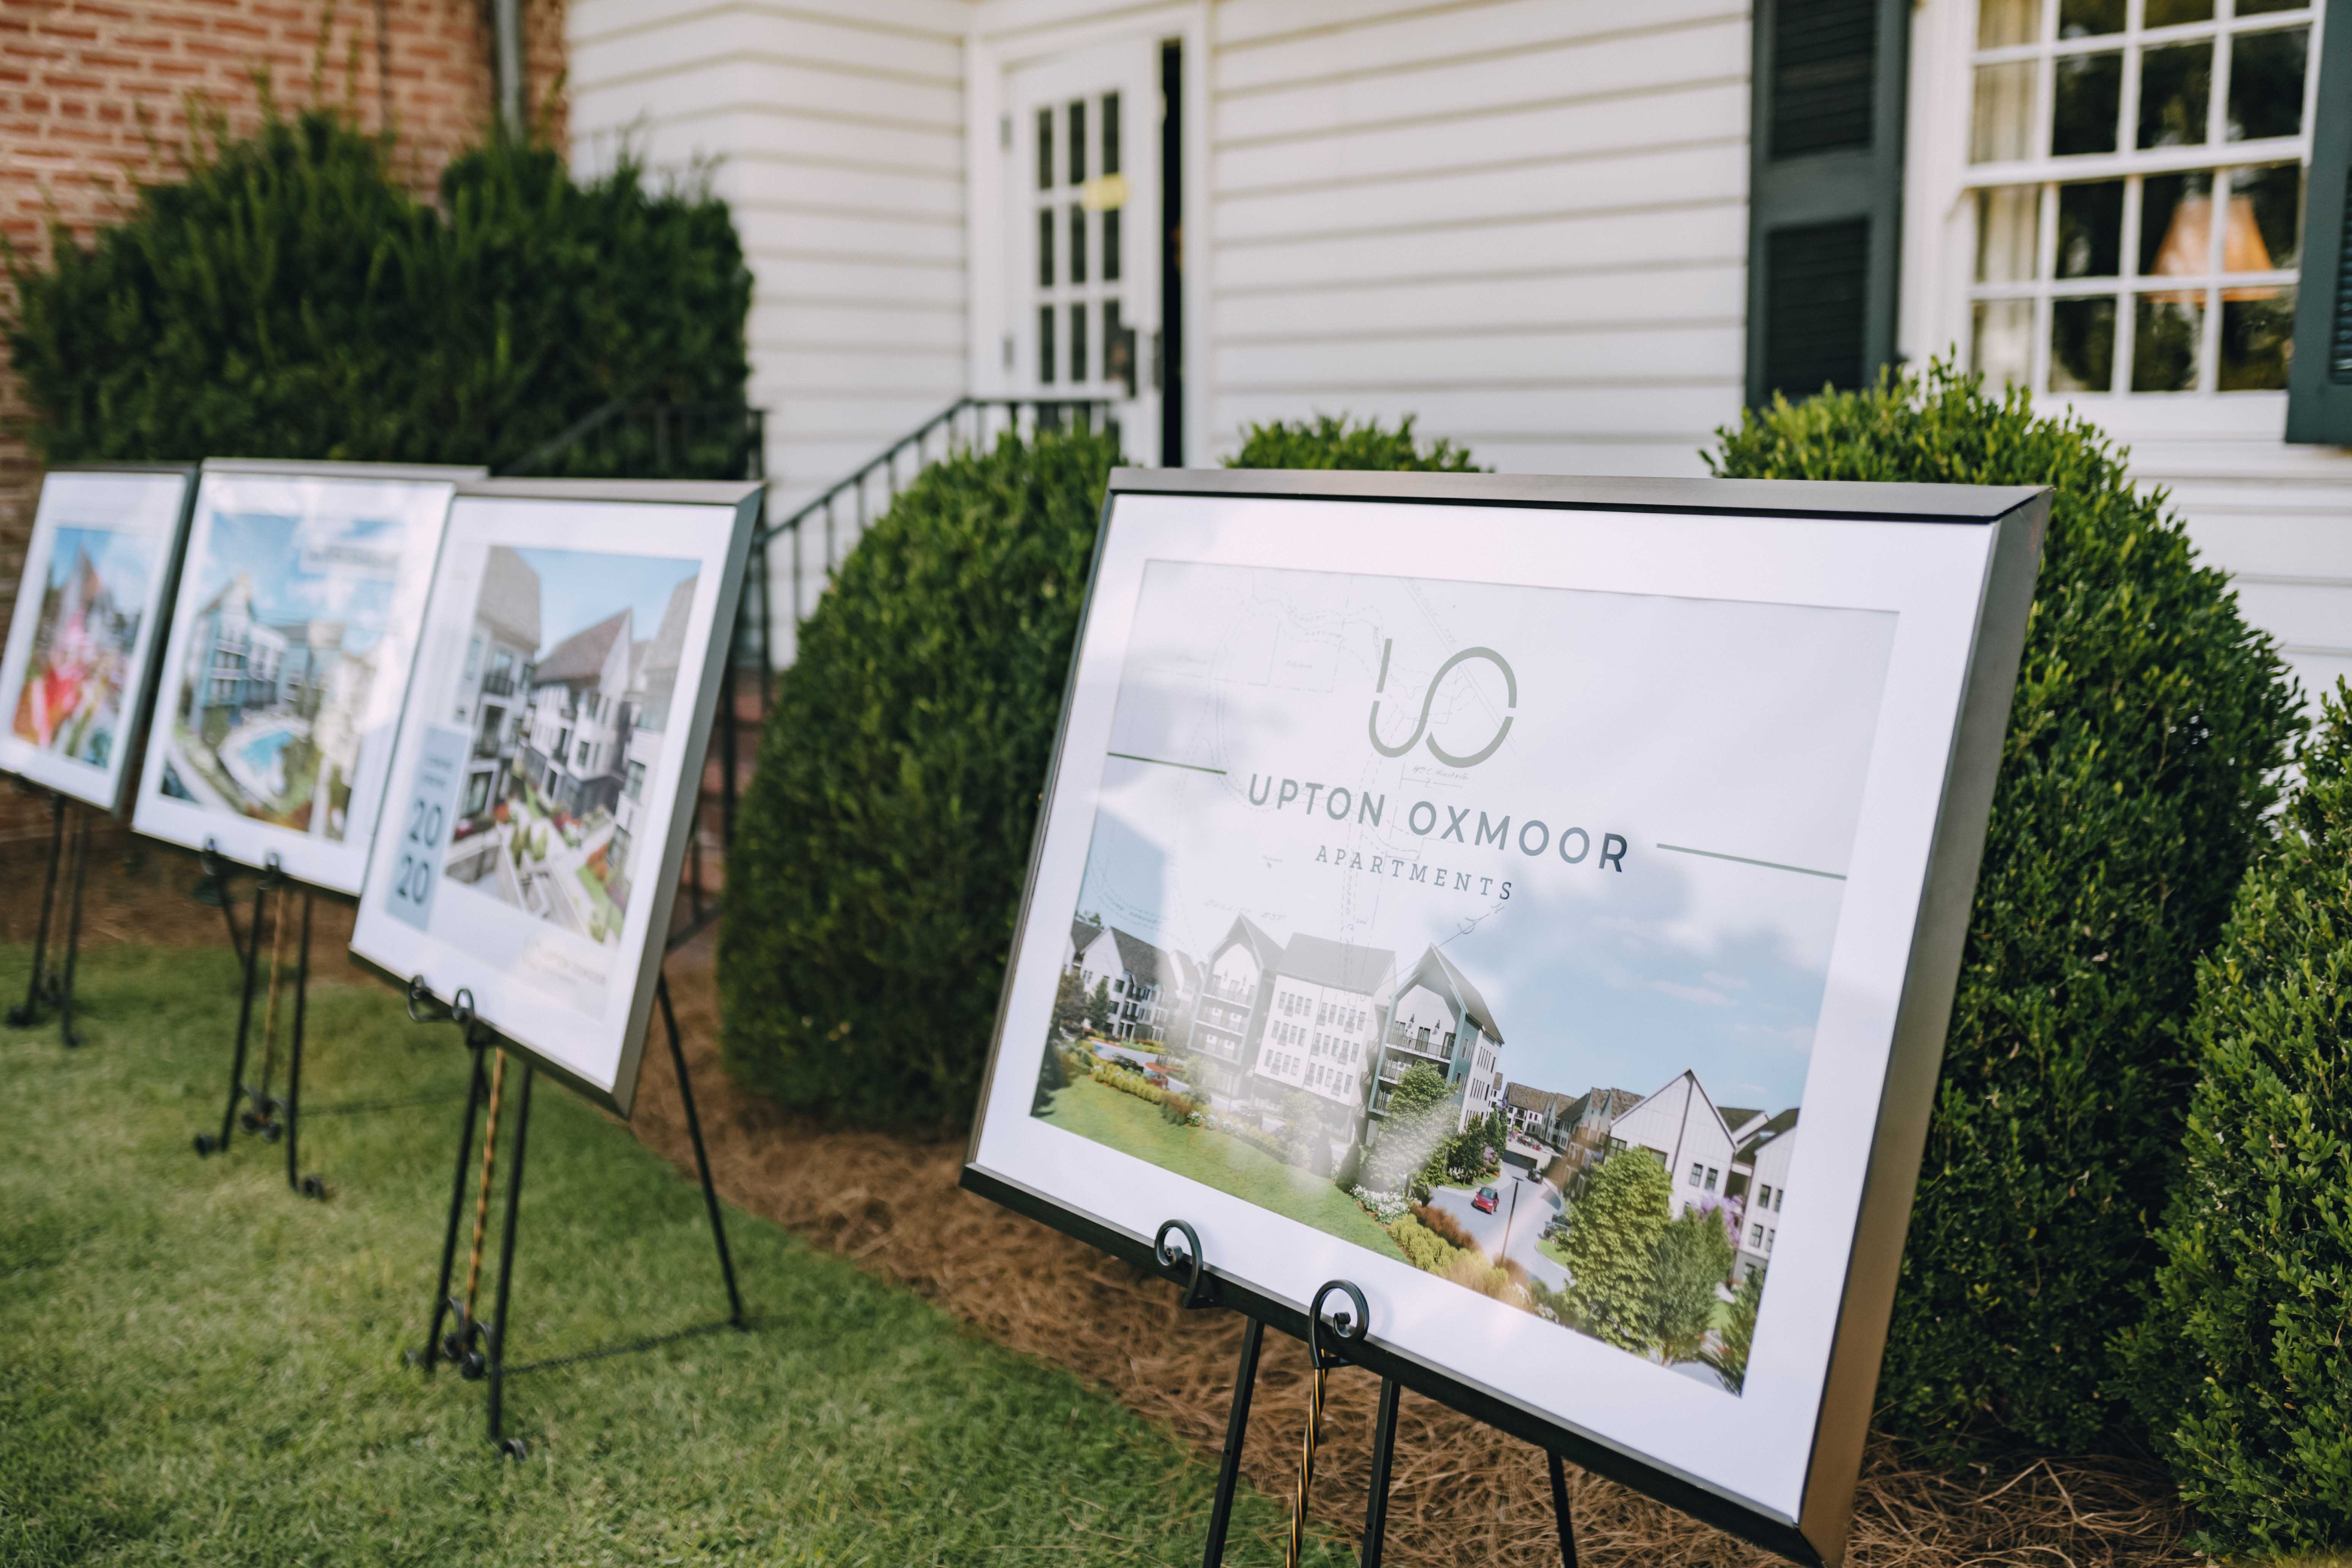 Upton Oxmoor Renderings displayed on tripods